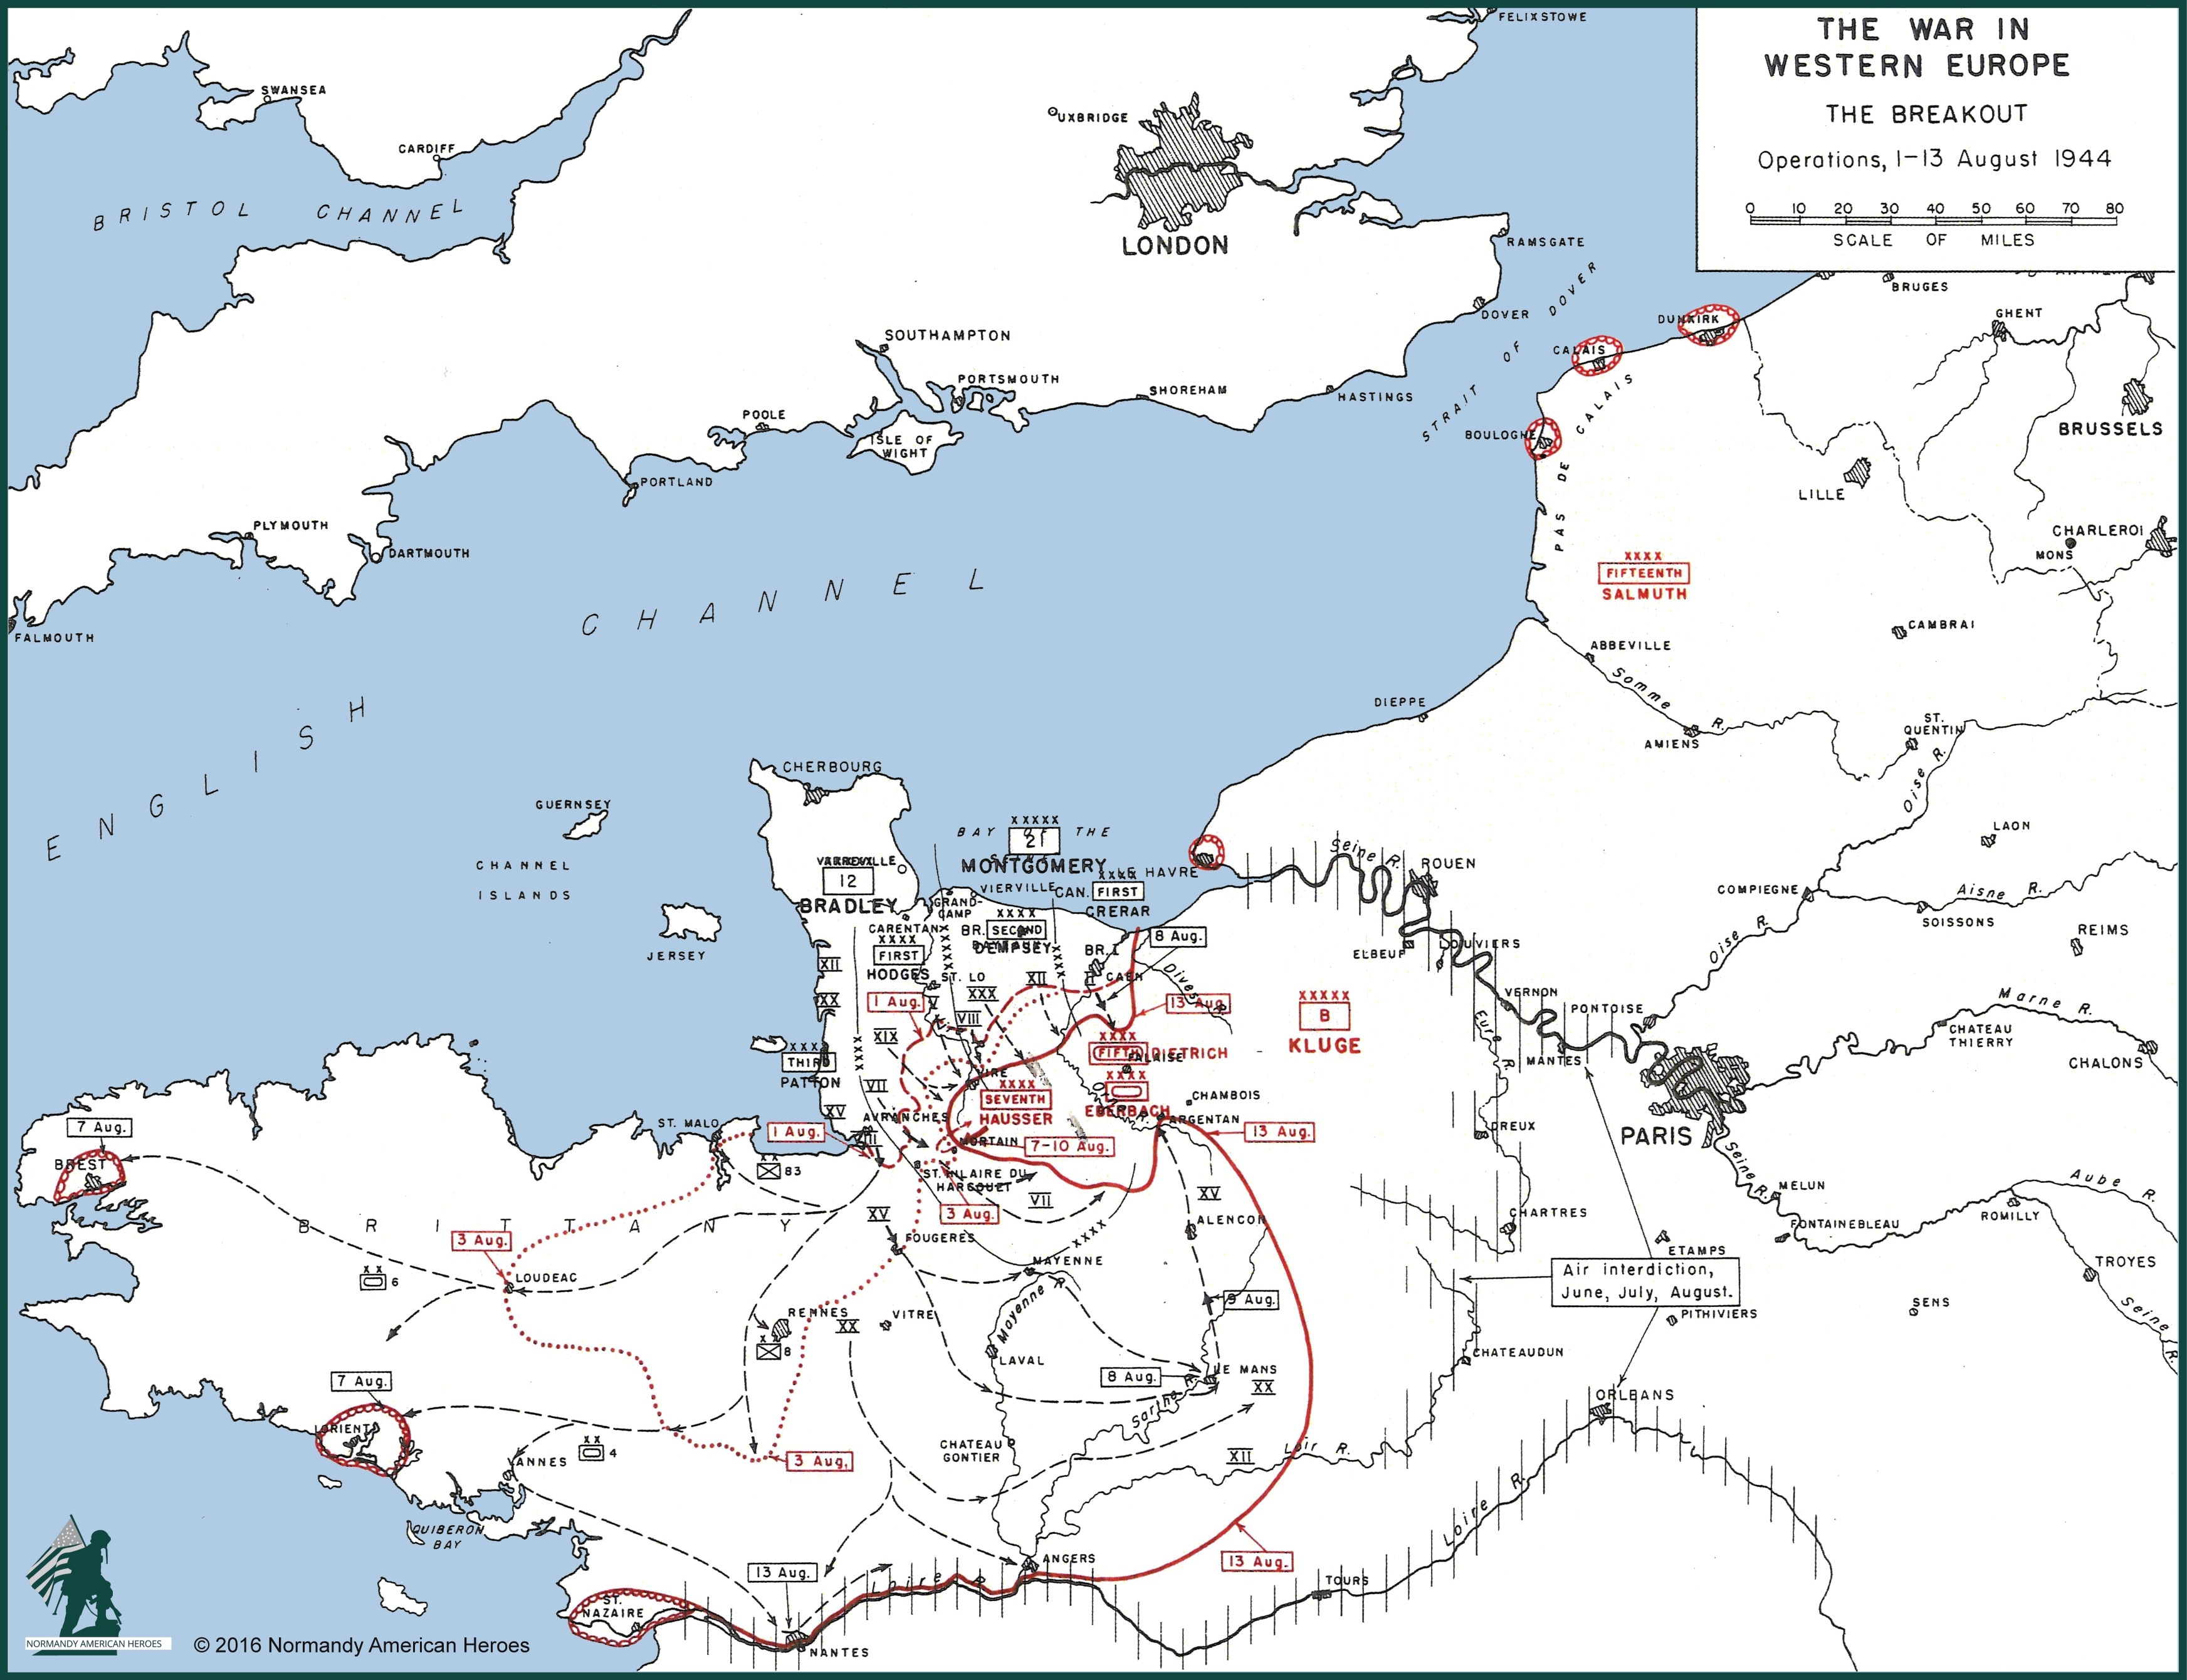 Operations 1 to 13 August 1944.jpg